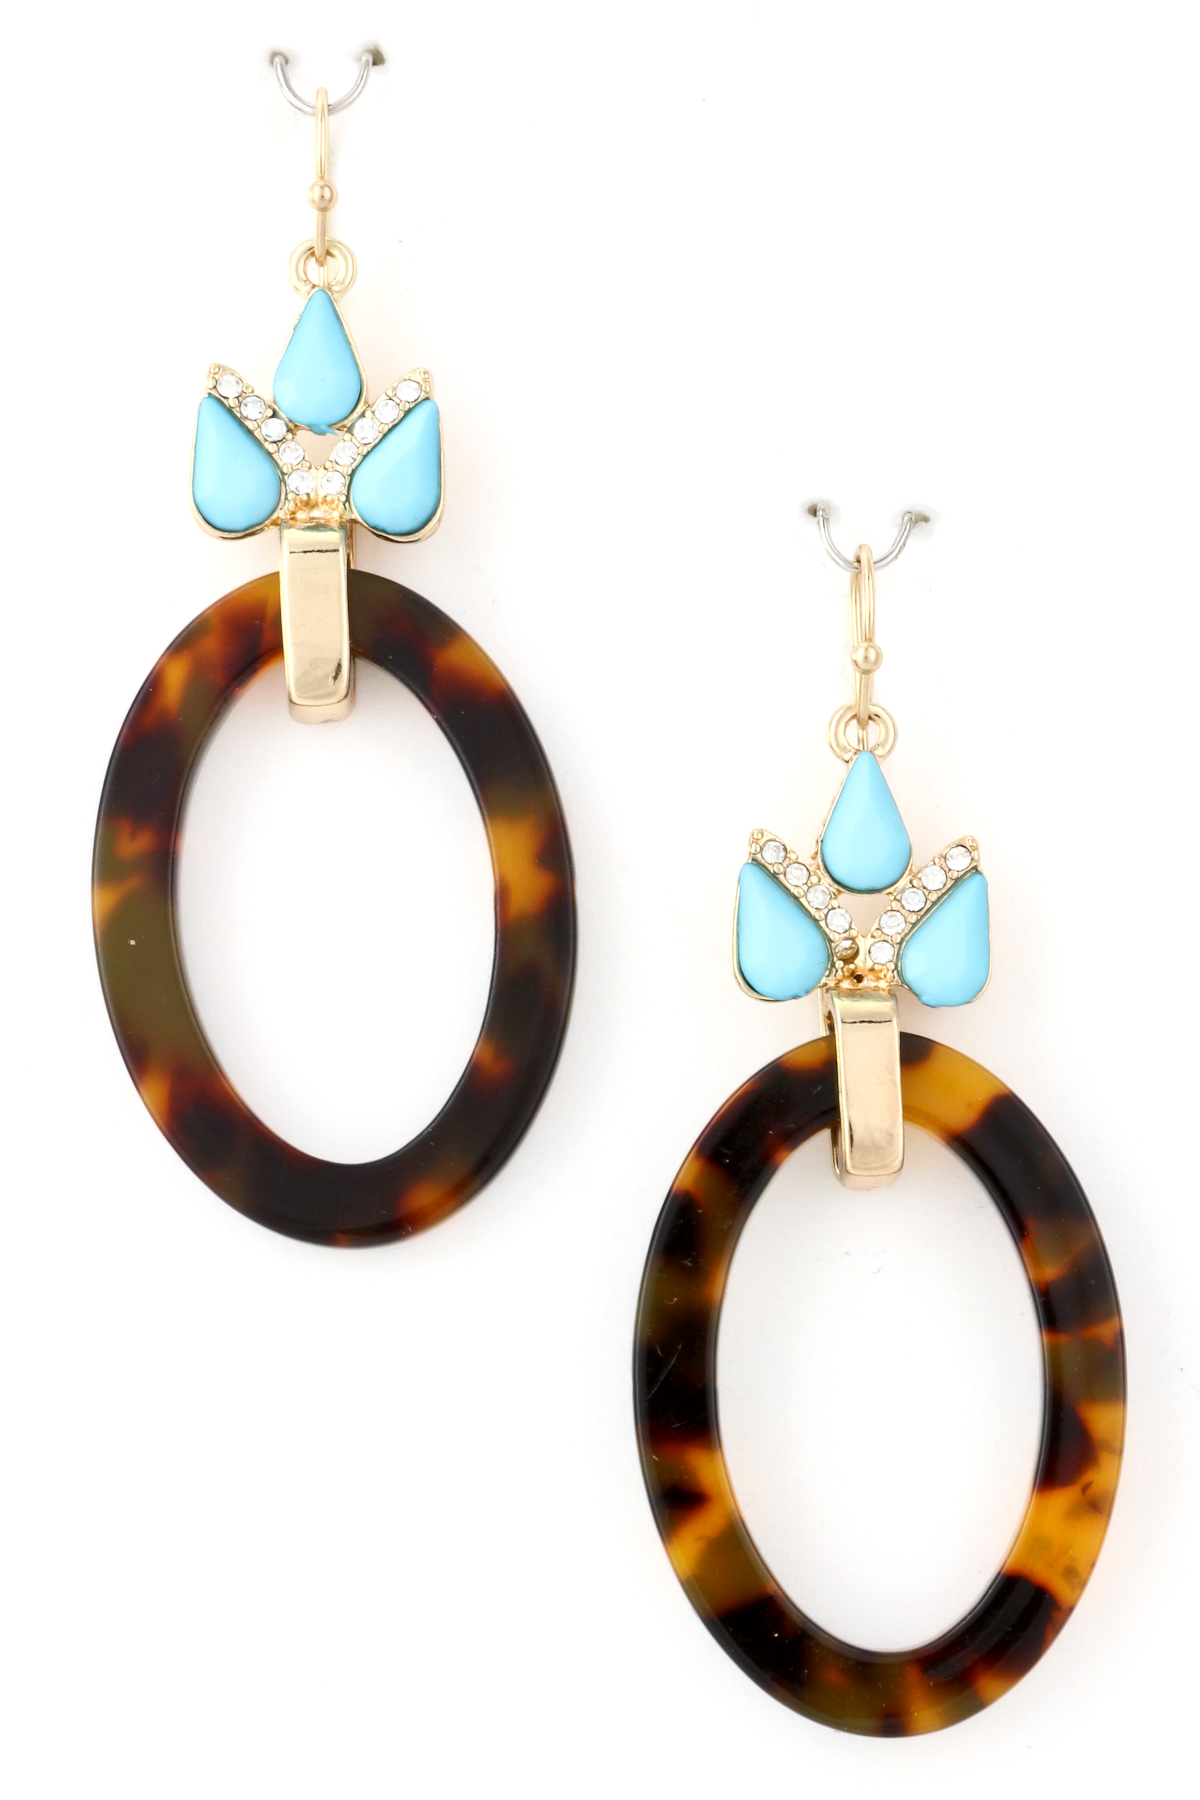 kors look tortoise michael in earrings gold button gallery product tortoiselook print jewelry lyst brown